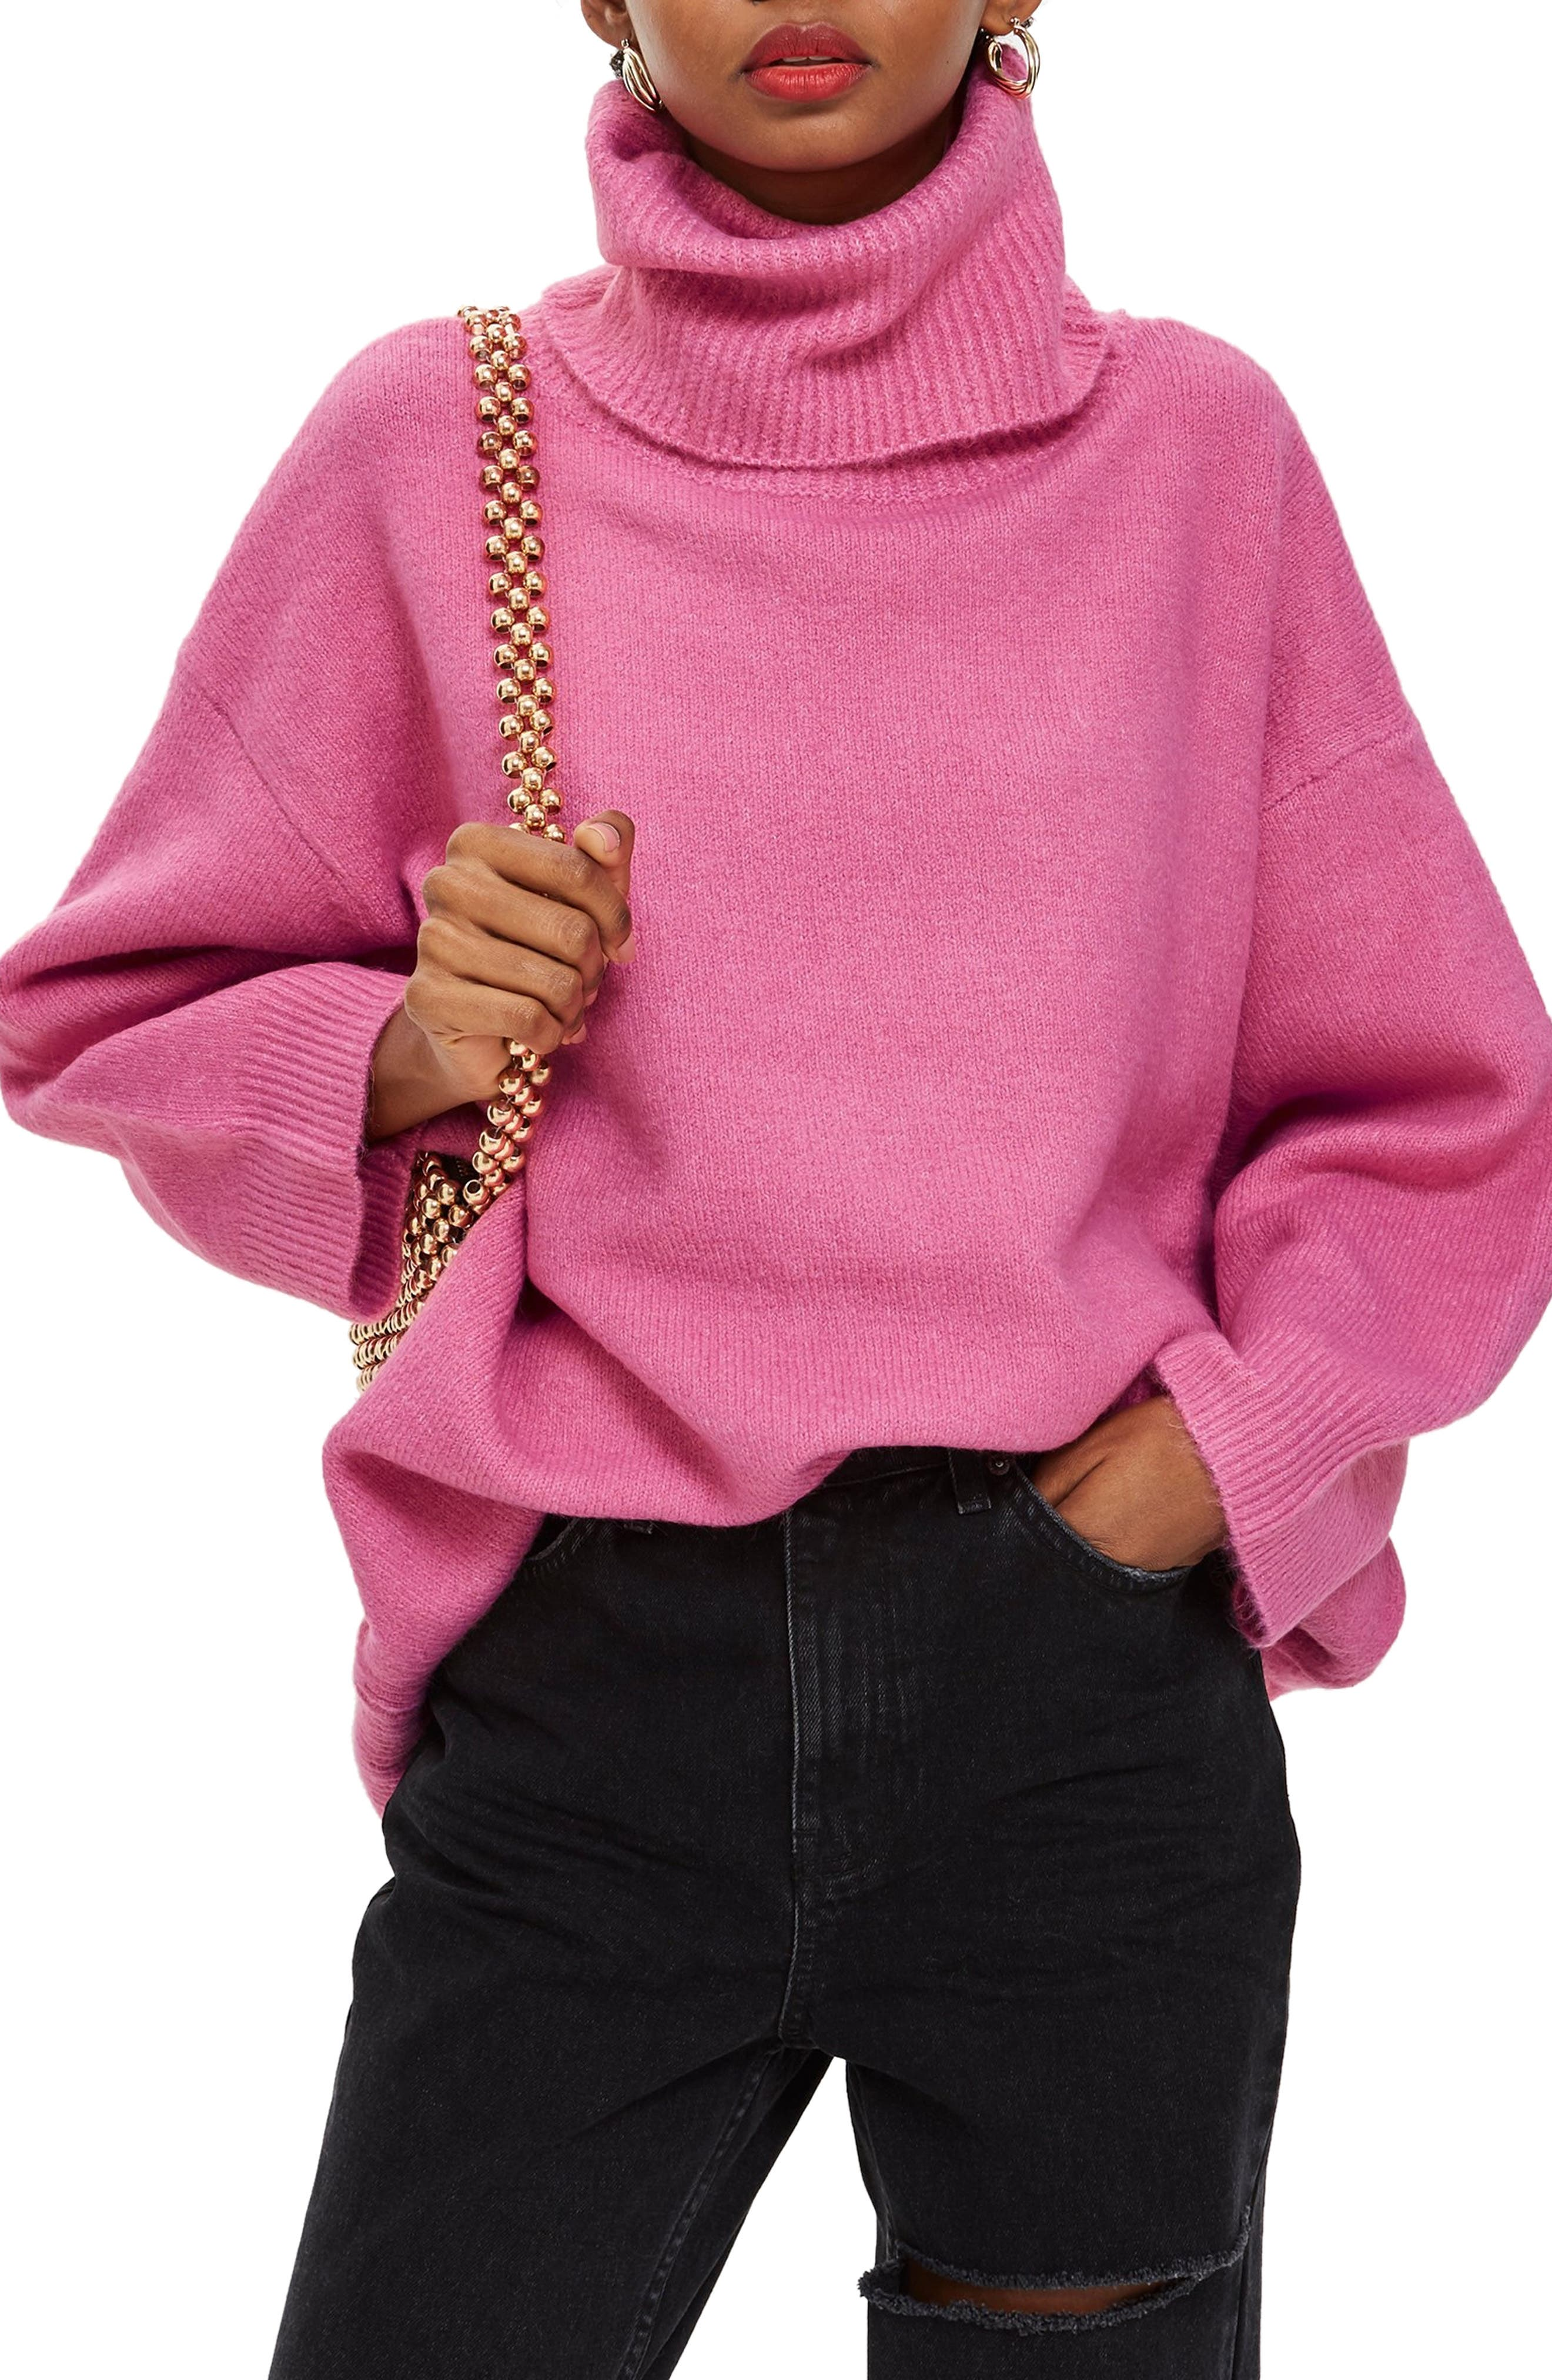 Oversize Turtleneck Sweater,                             Main thumbnail 1, color,                             BRIGHT PINK